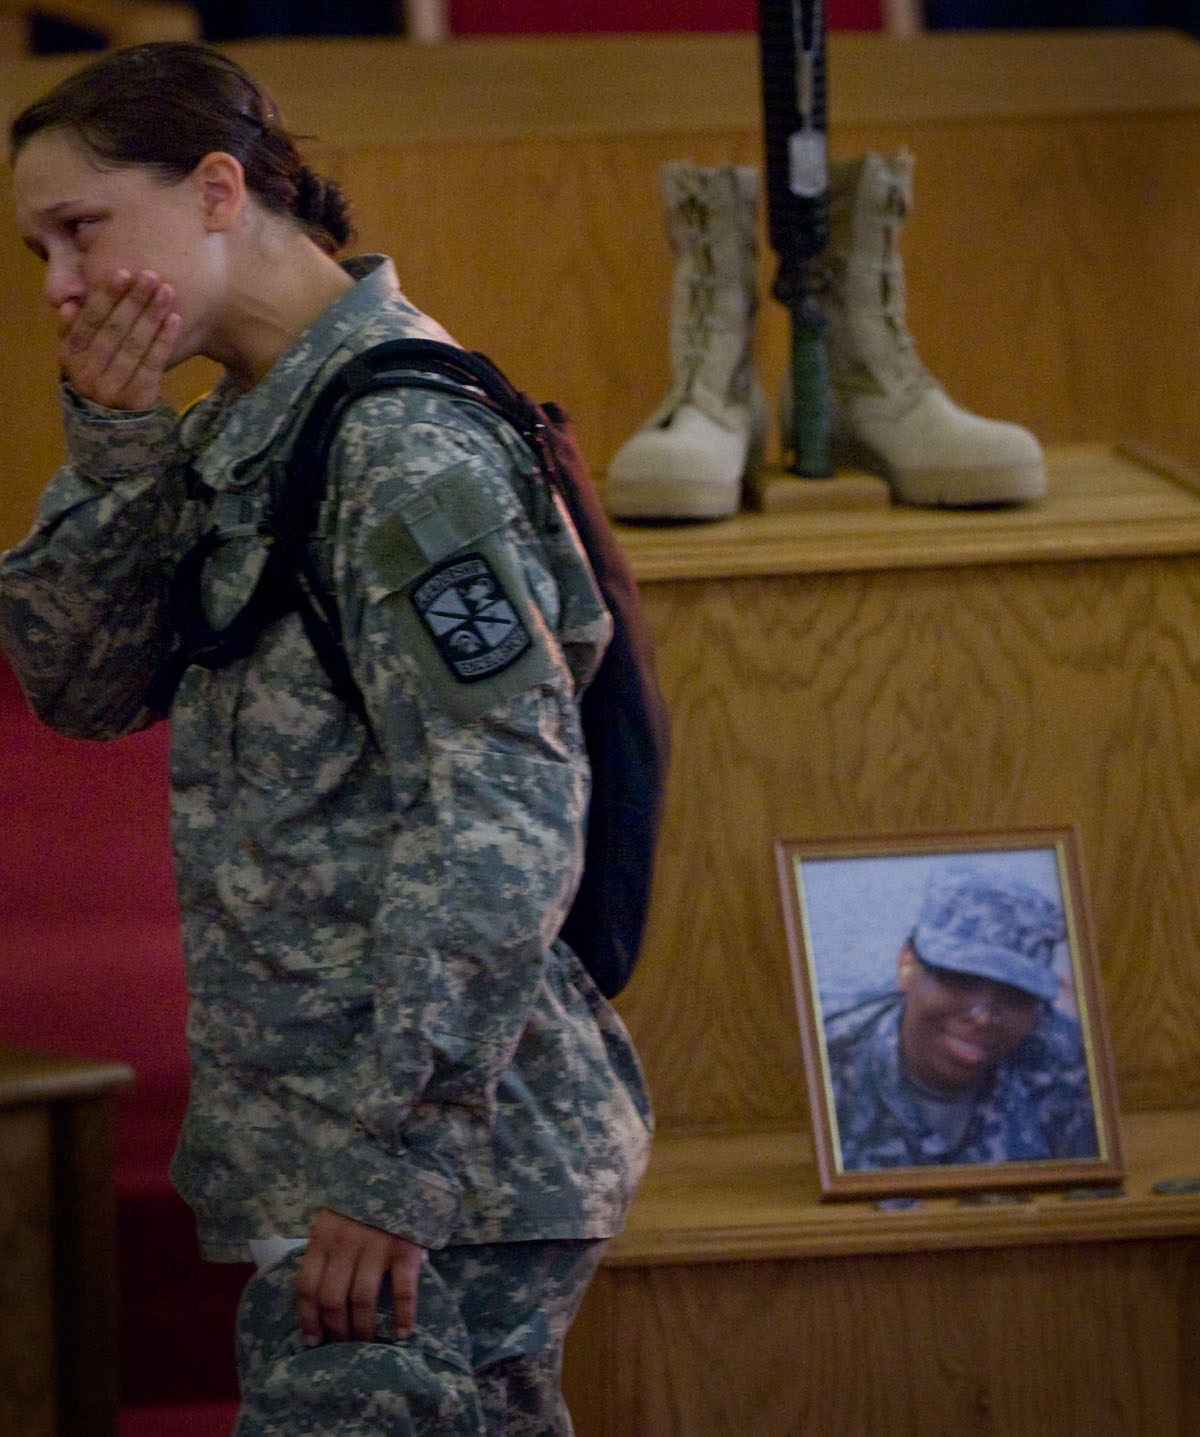 After a memorial service for cadet Carmela Kirkland, cadet Hannah Metheny passes by a photo of the deceased cadet and a display of her combat boots, rifle and kevlar helmet.